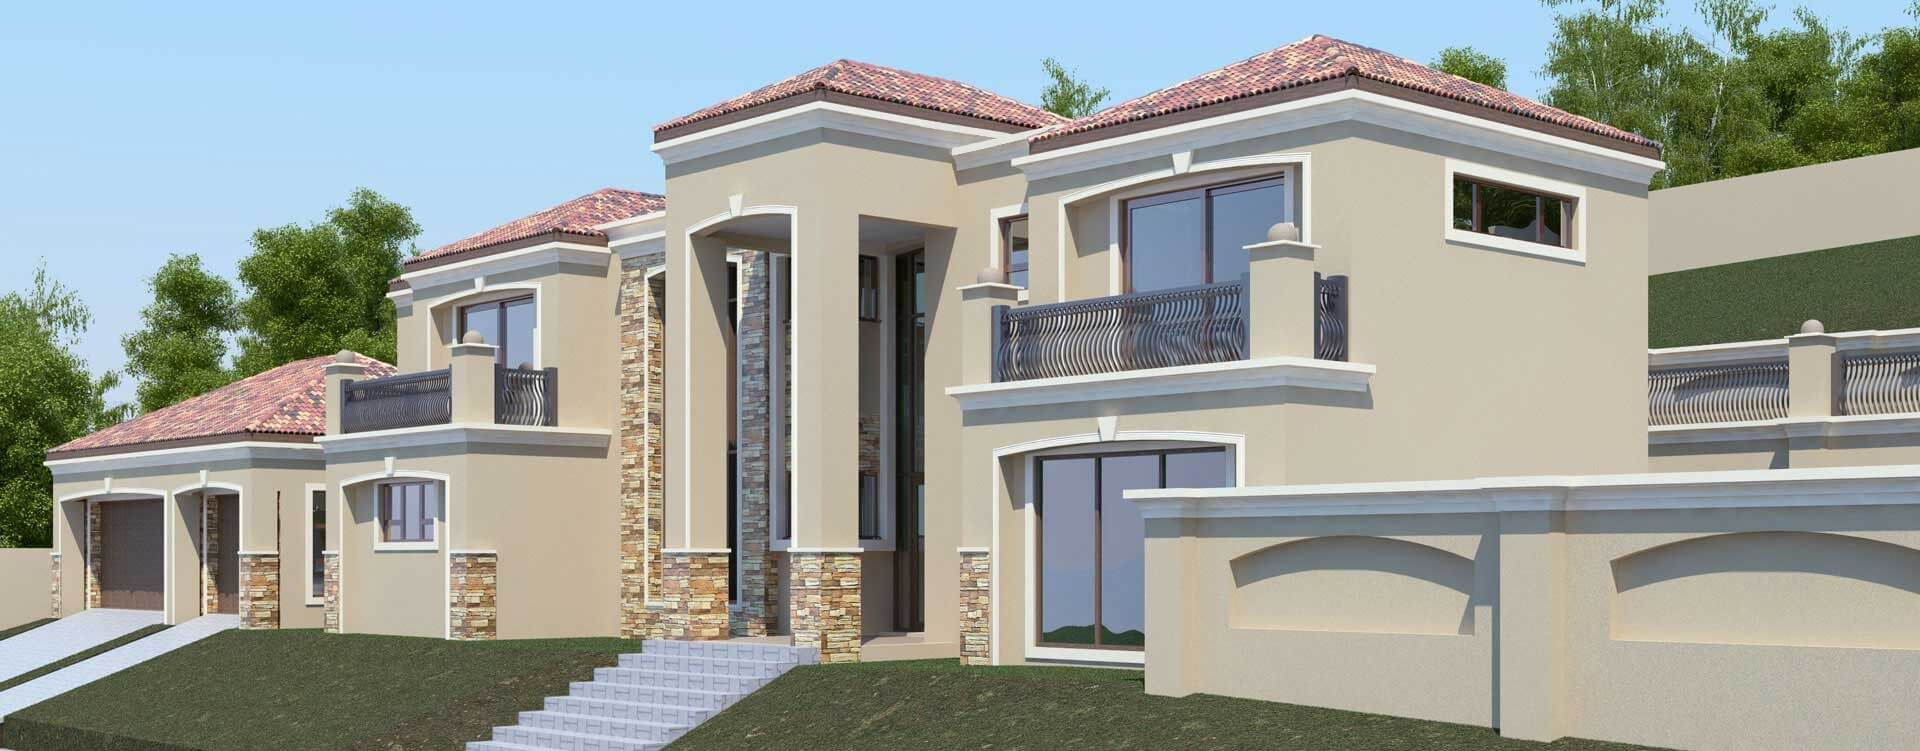 Modern Tuscan Style, 5 Bedroom House Plan, Double Storey Floor Plans,  Nethouseplans Architectural